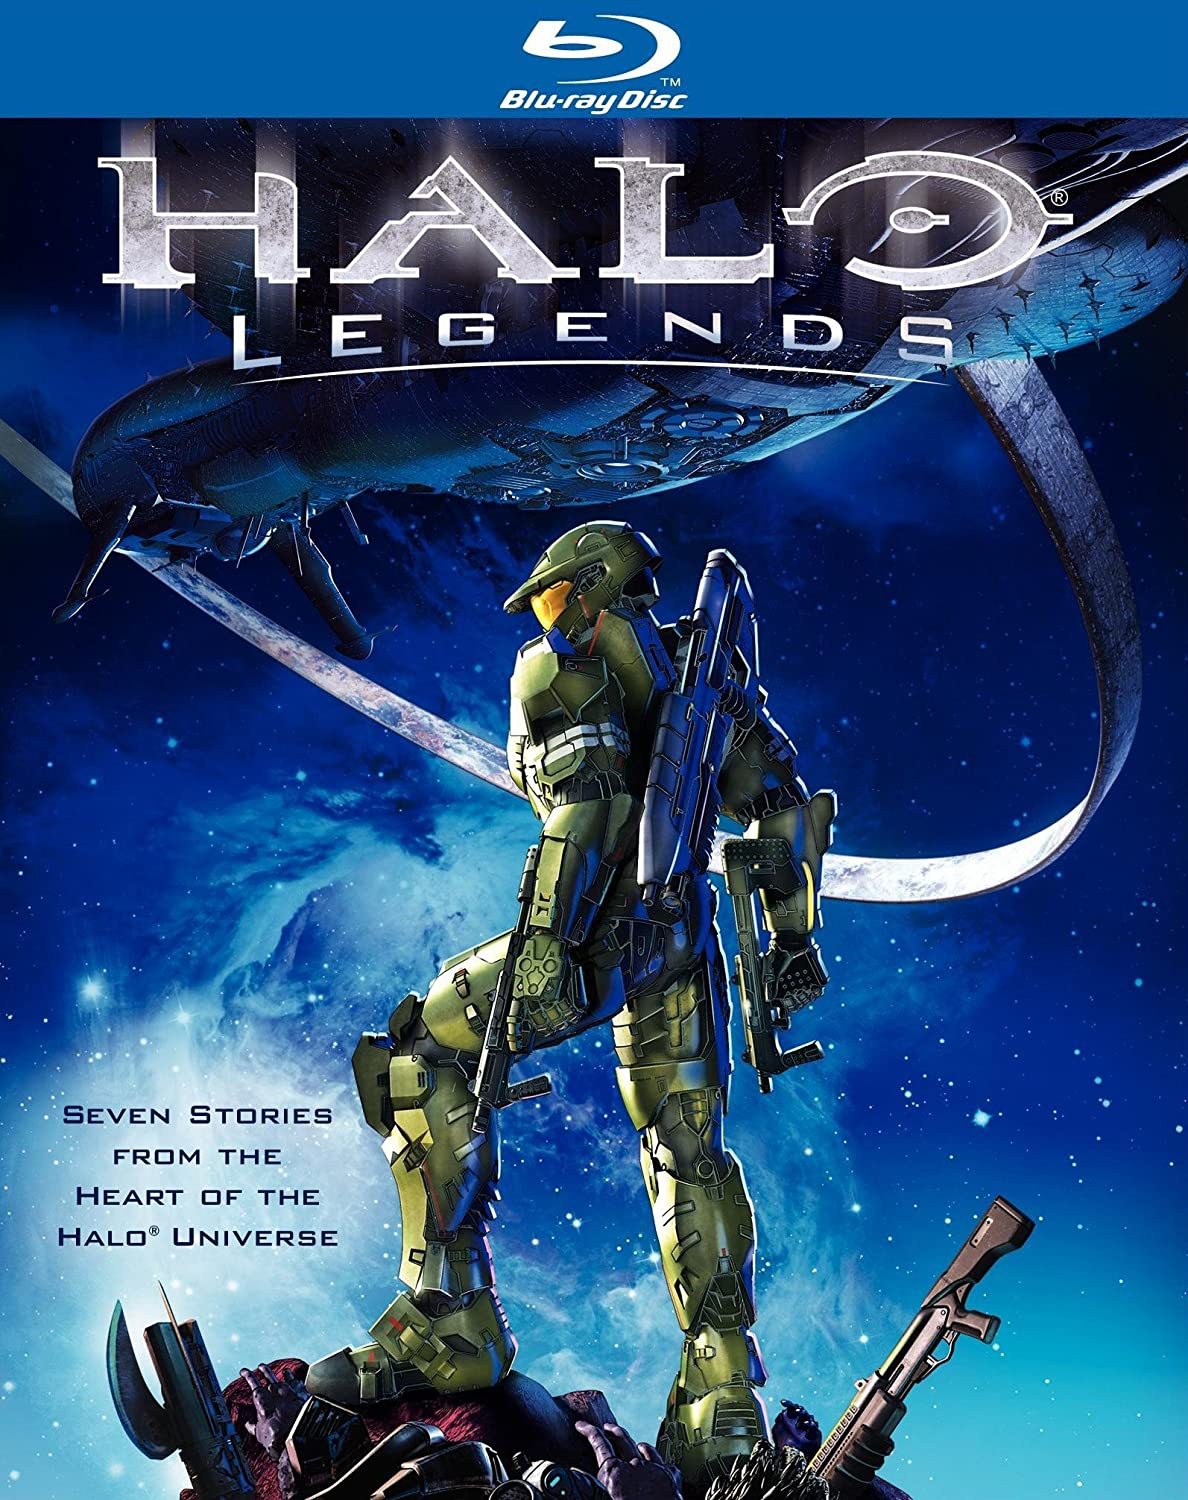 Halo legends [Blu-ray]: Amazon.es: Shinji Aramaki, Mamoru Os: Cine y Series TV